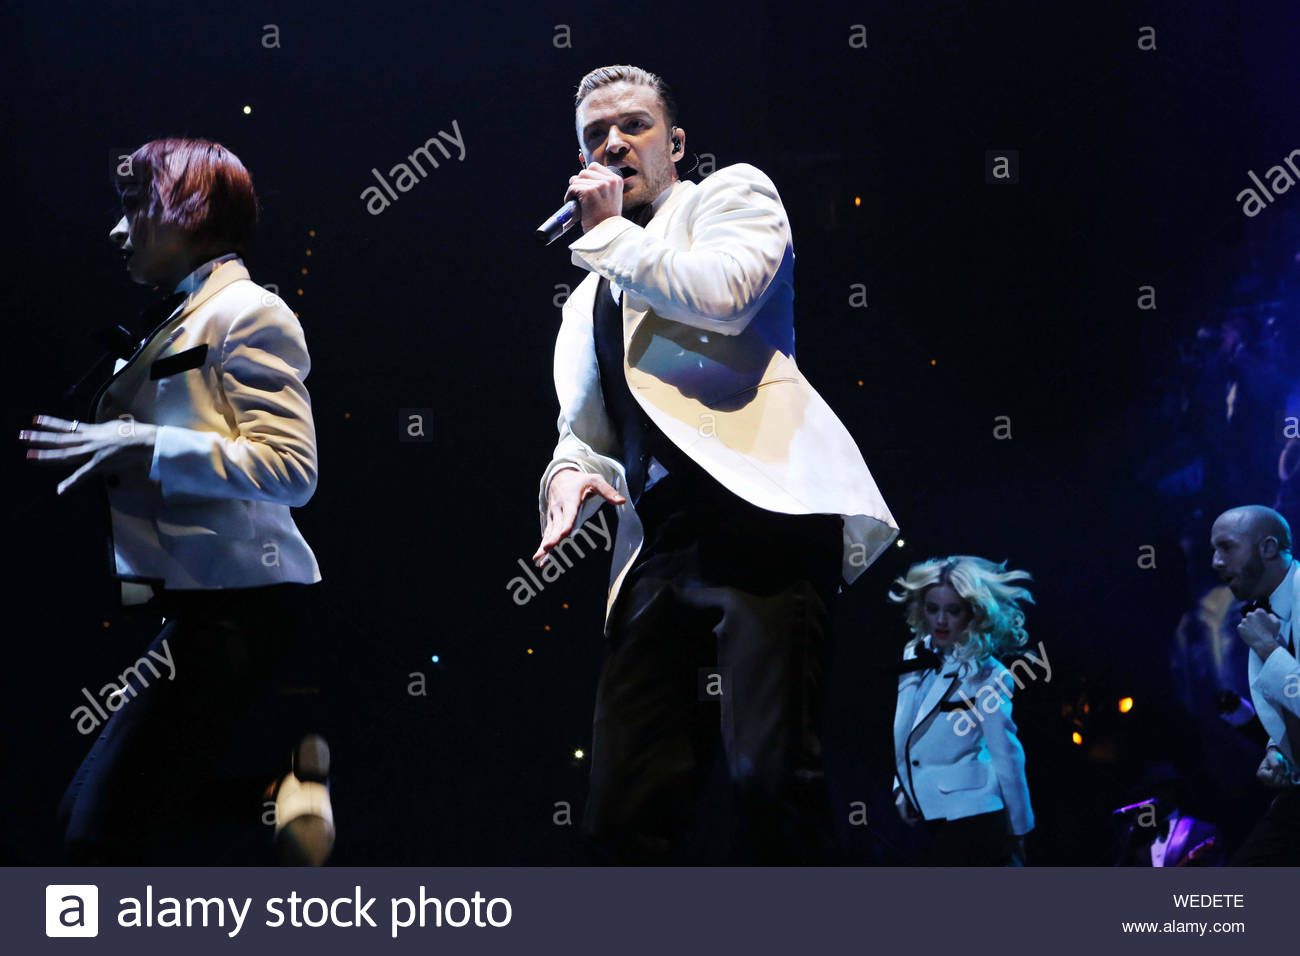 Justin Timberlake Tour 2020.Atlanta Ga Justin Timberlake Performs At A Sold Out